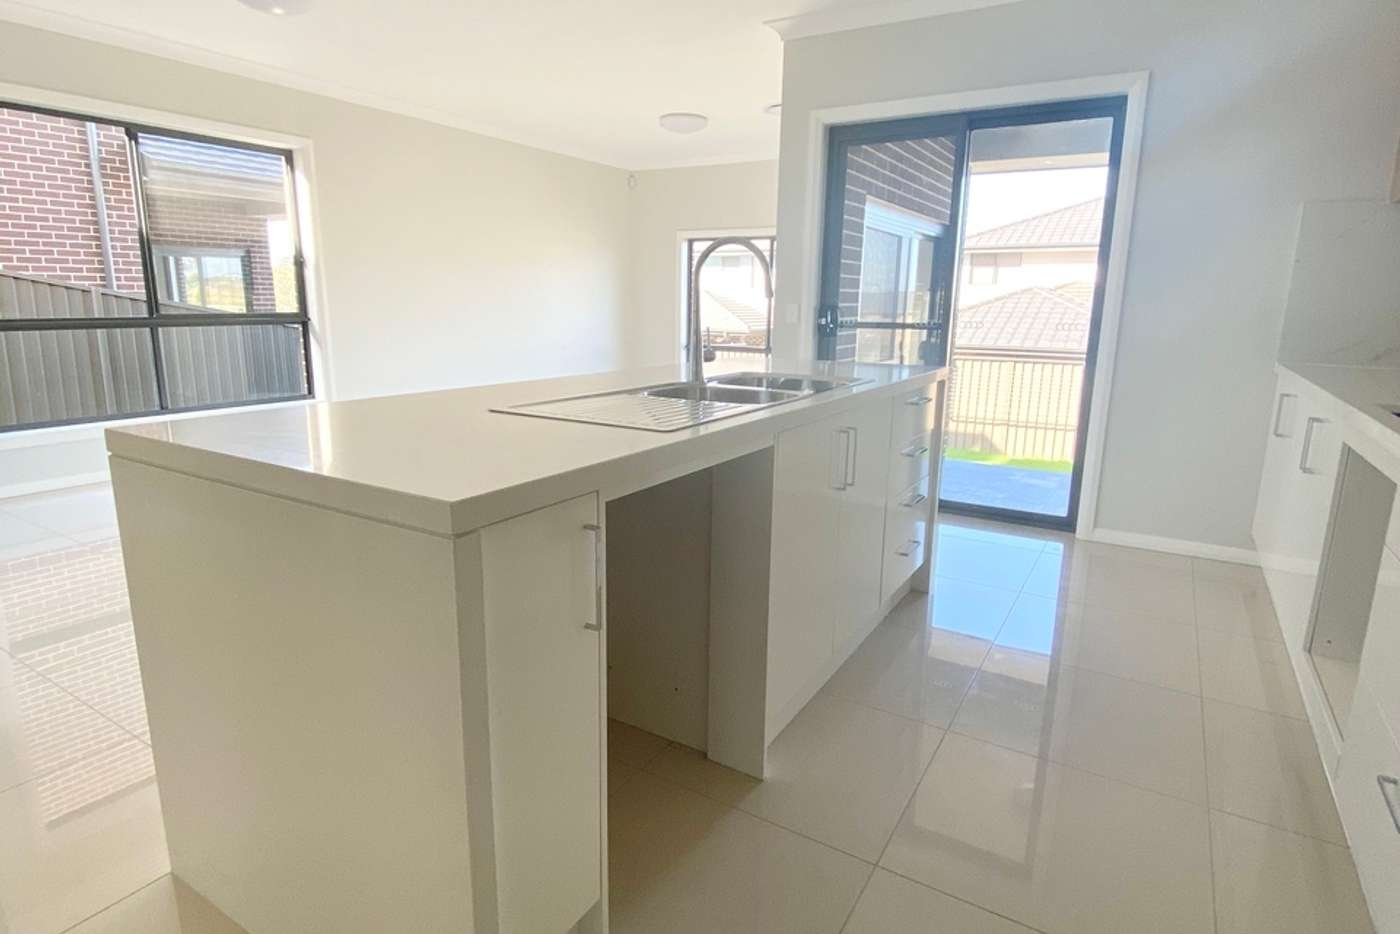 Sixth view of Homely house listing, 111 Tallawong Road, Rouse Hill NSW 2155